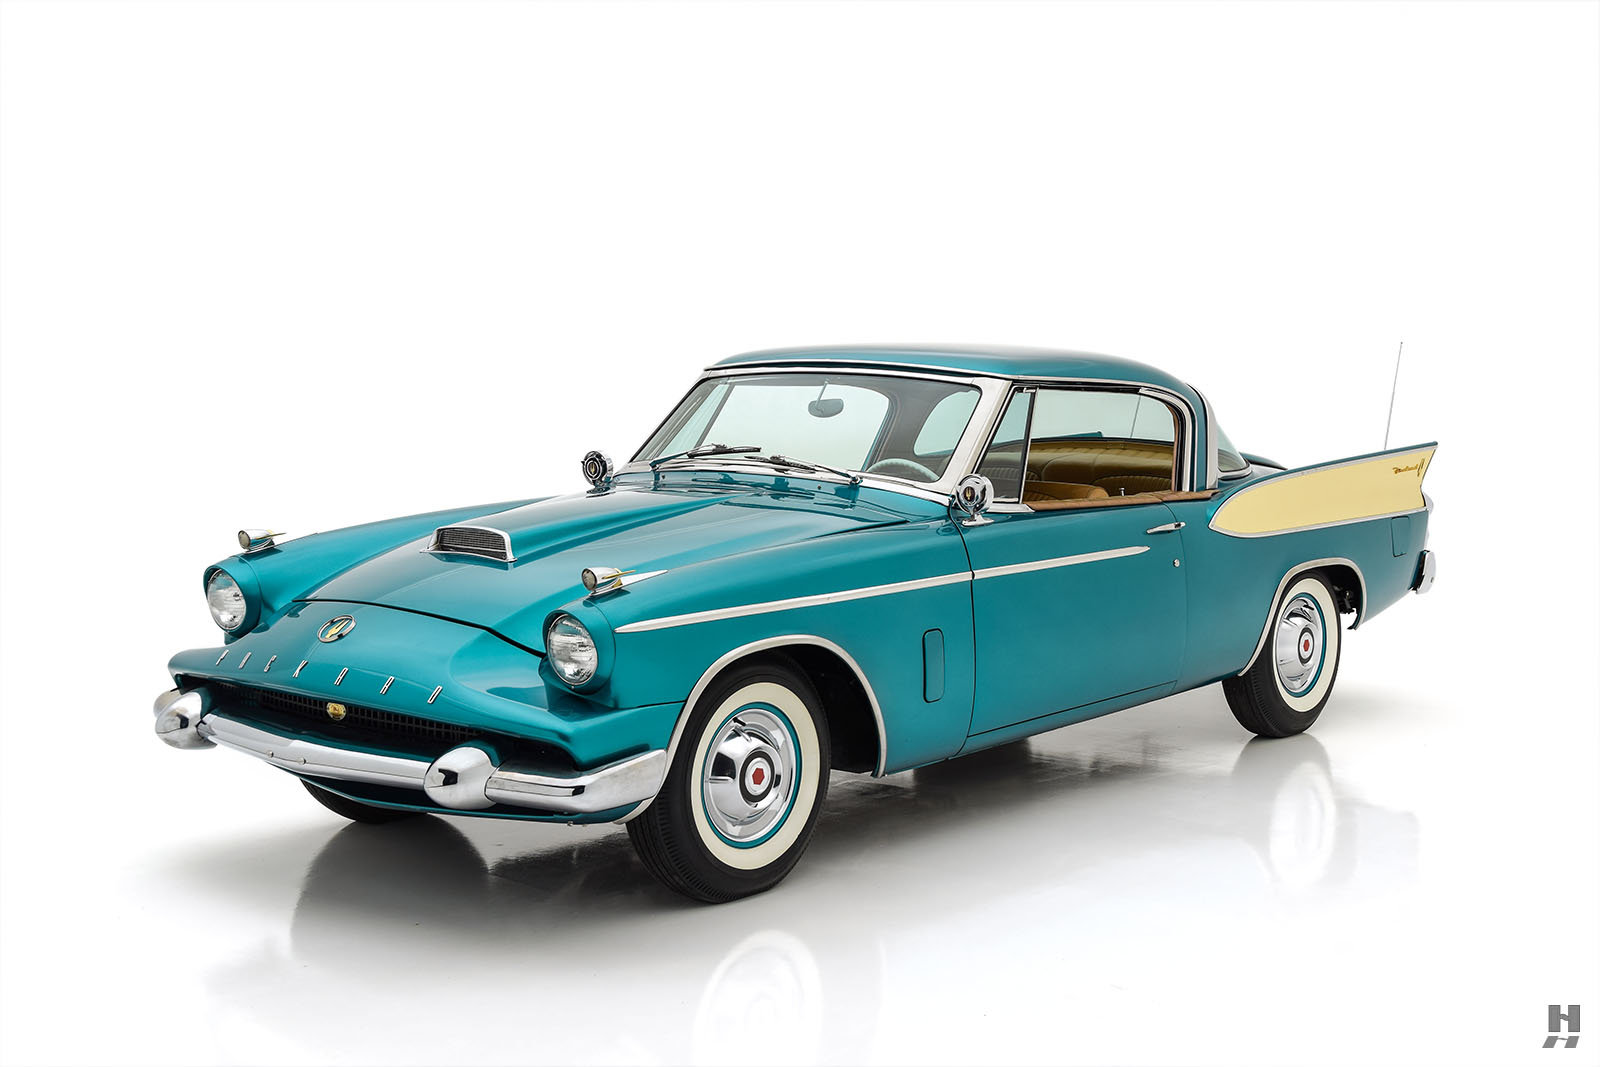 1958 PACKARD HAWK COUPE For Sale (picture 1 of 6)